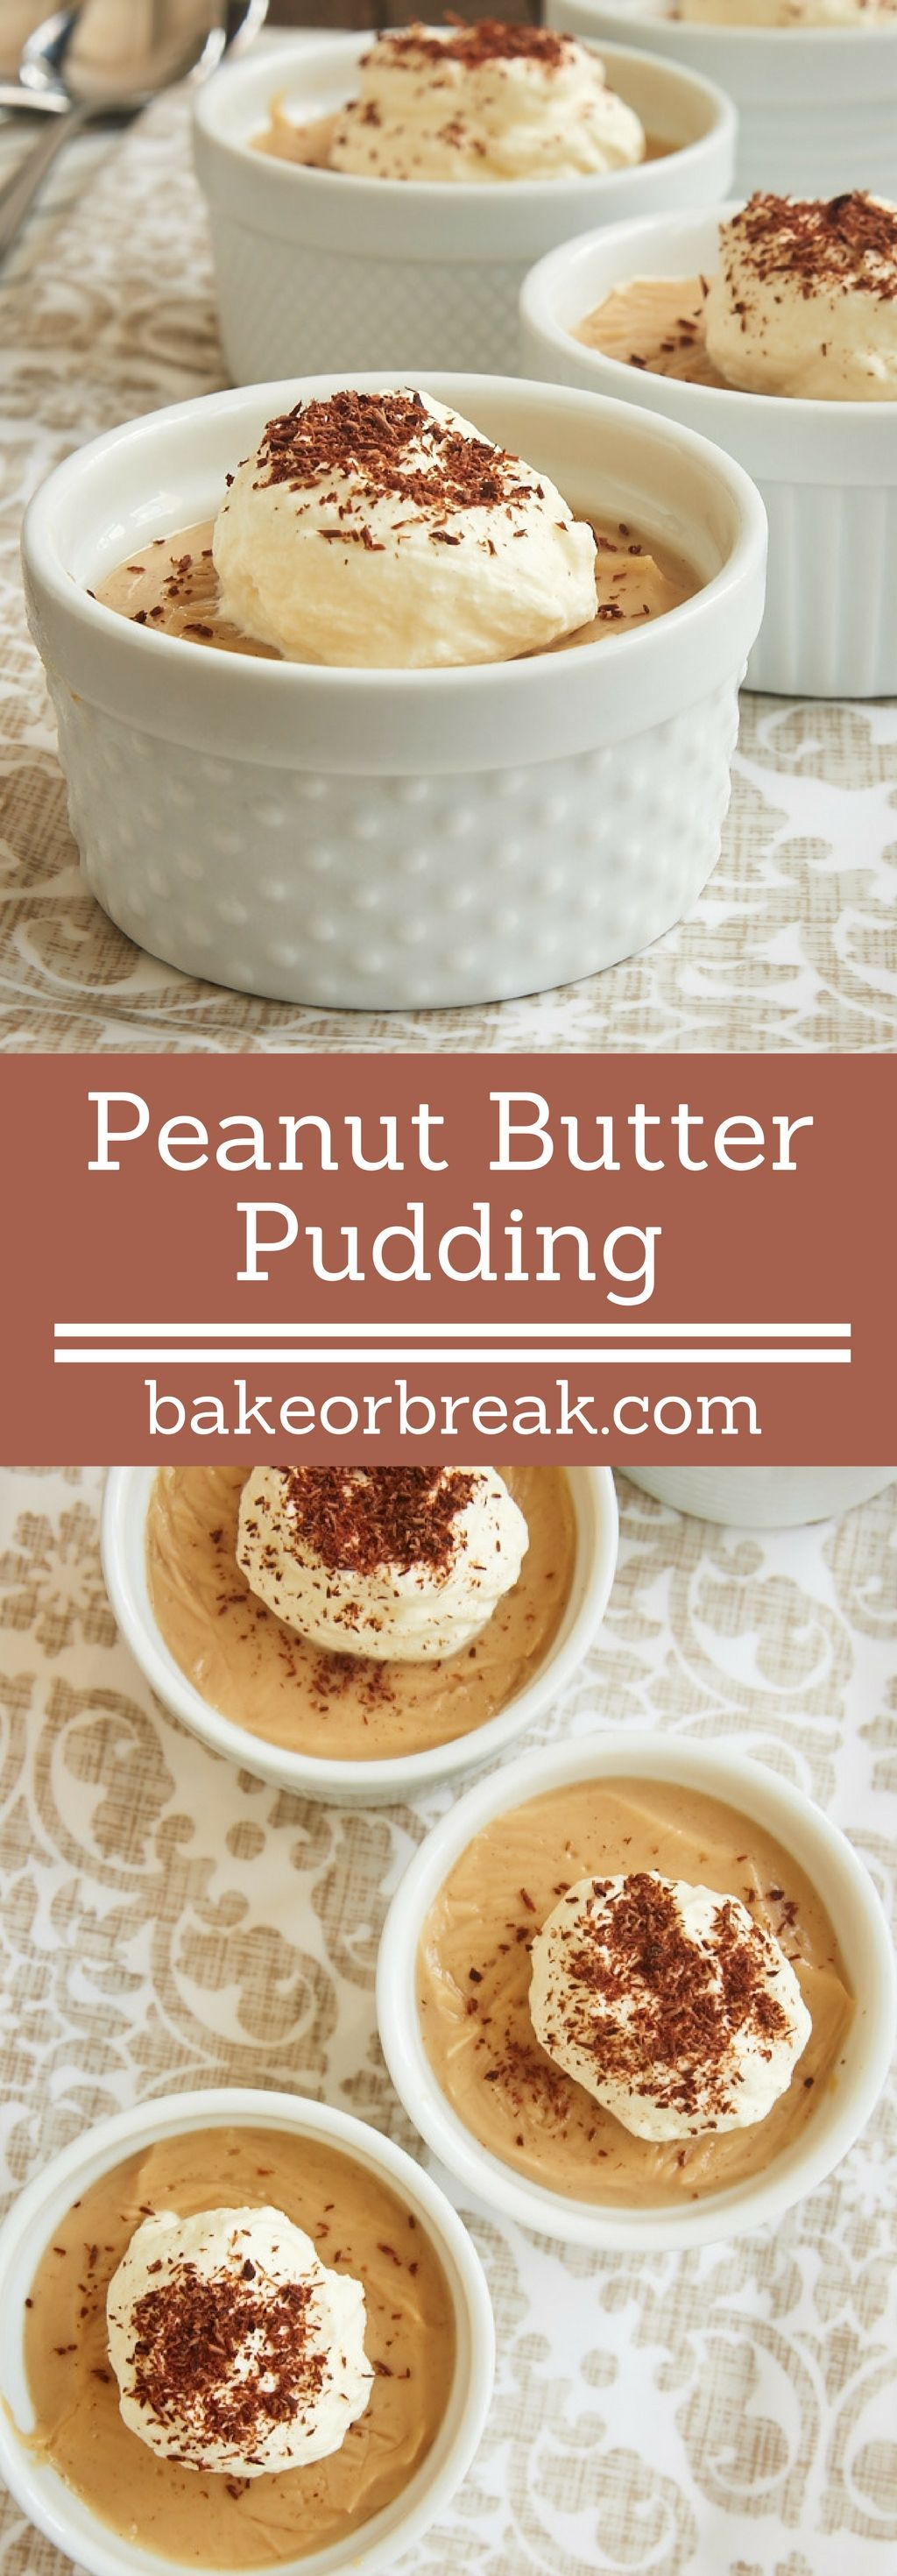 Peanut butter pudding recipe homemade peanut butter for Simple peanut butter dessert recipes